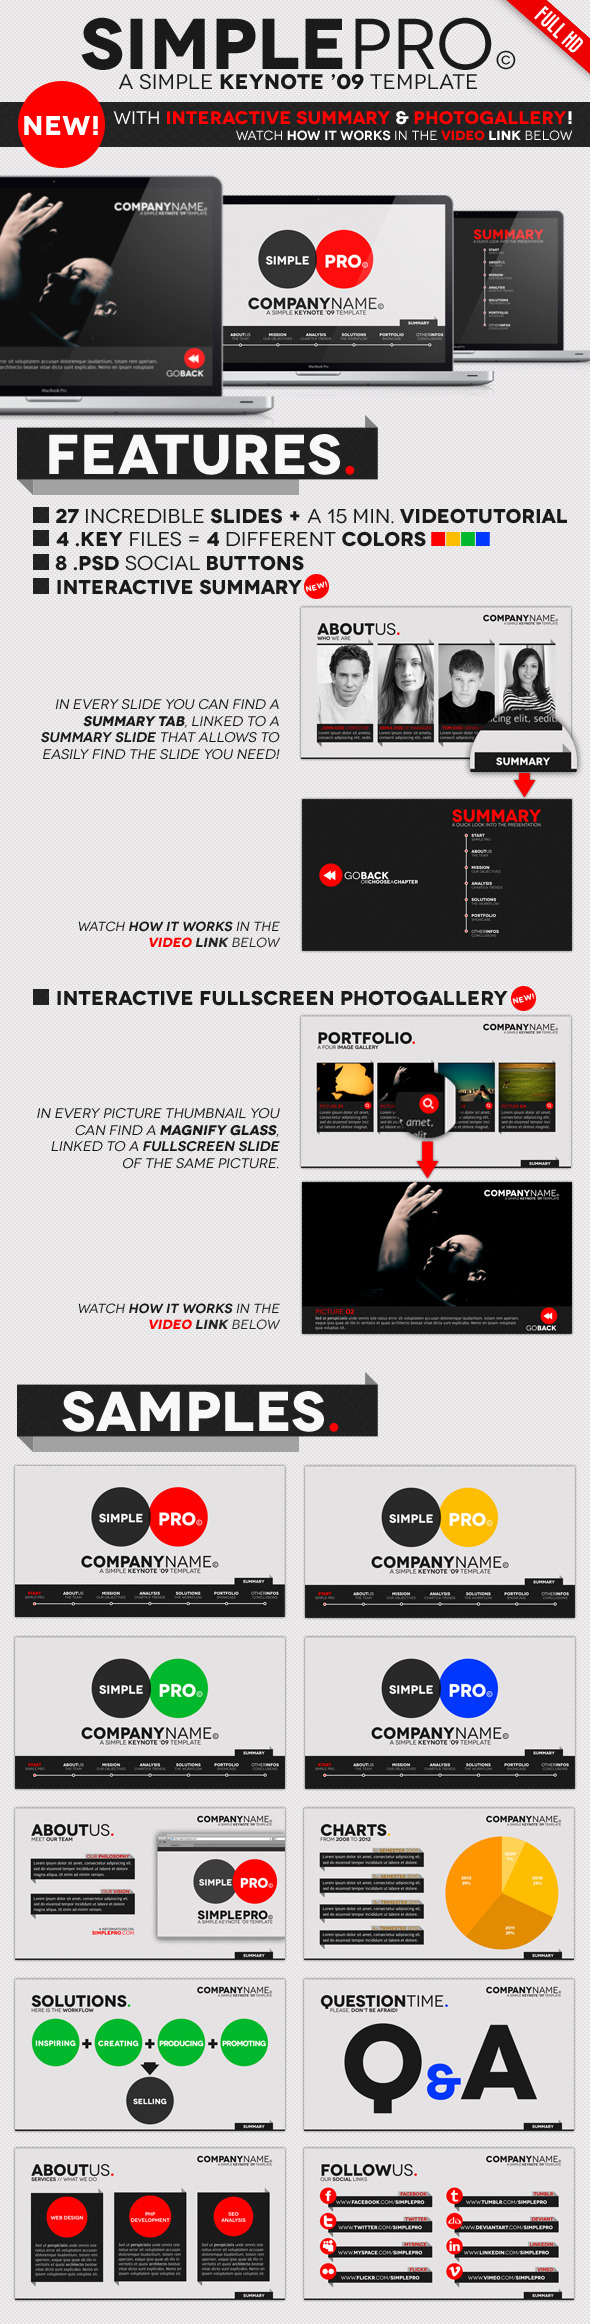 Simple Pro Keynote Interactive Template